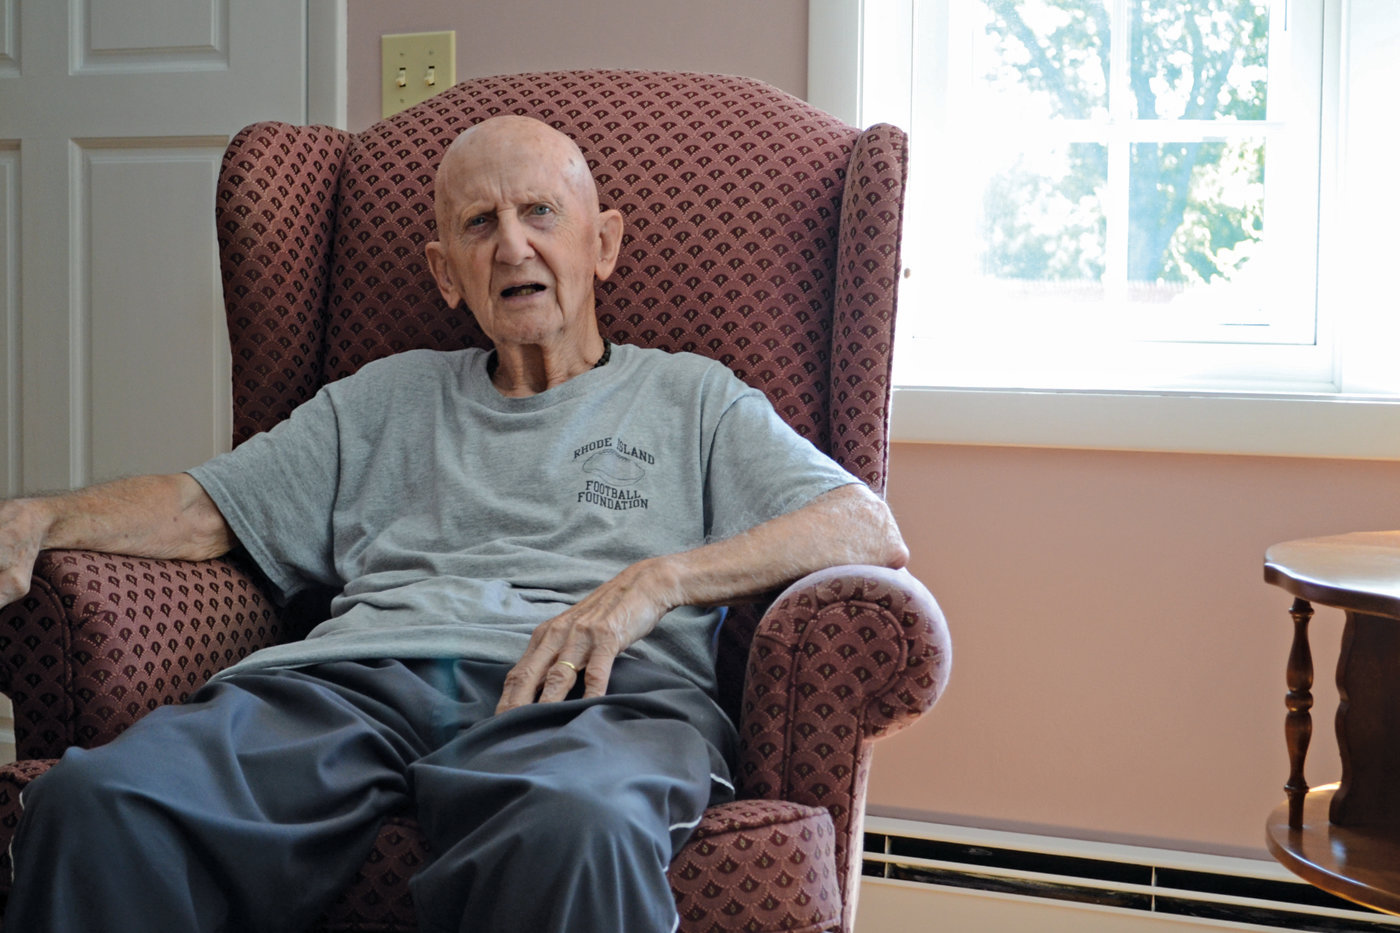 GOING STRONG: D-Day and Iwo Jima veteran Ray Raiche sits in his Governor Francis home on Monday. At 93 years old, he will be the youngest Iwo Jima survivor to participate in the Bristol 4th of July Parade.